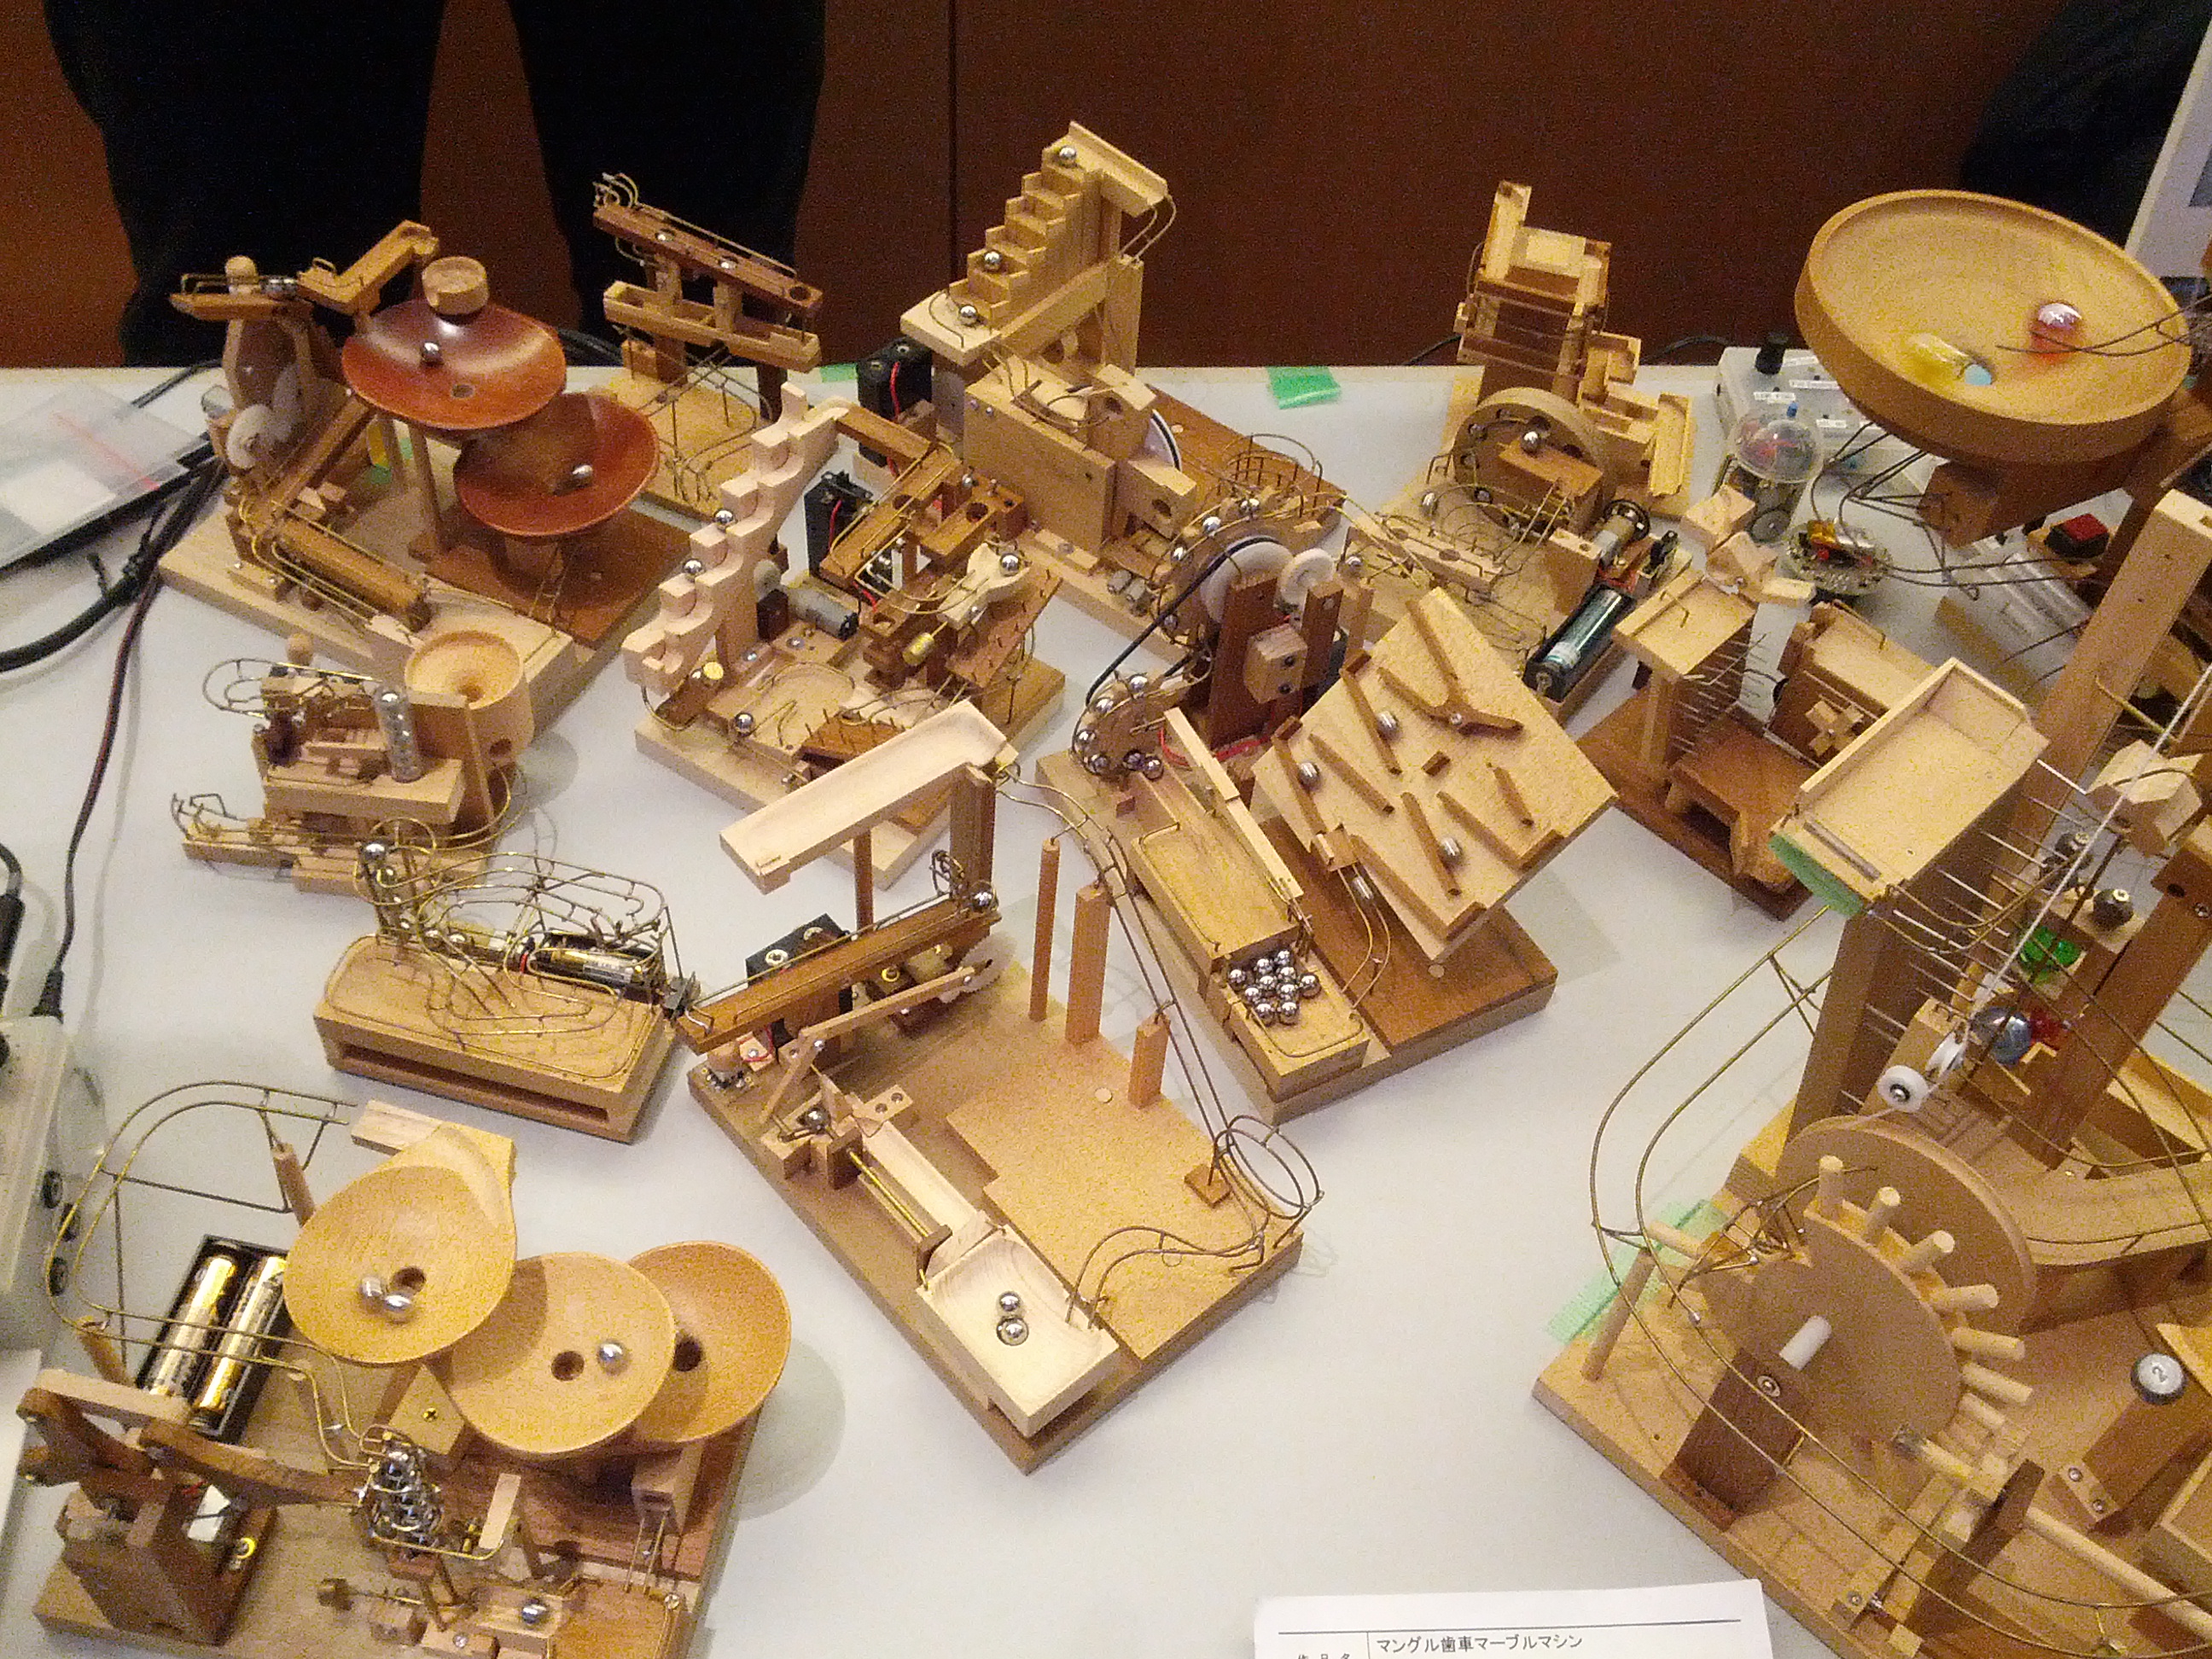 Perpetual ball runs from @nao_denha are an interesting mix of electronics and woodwork.